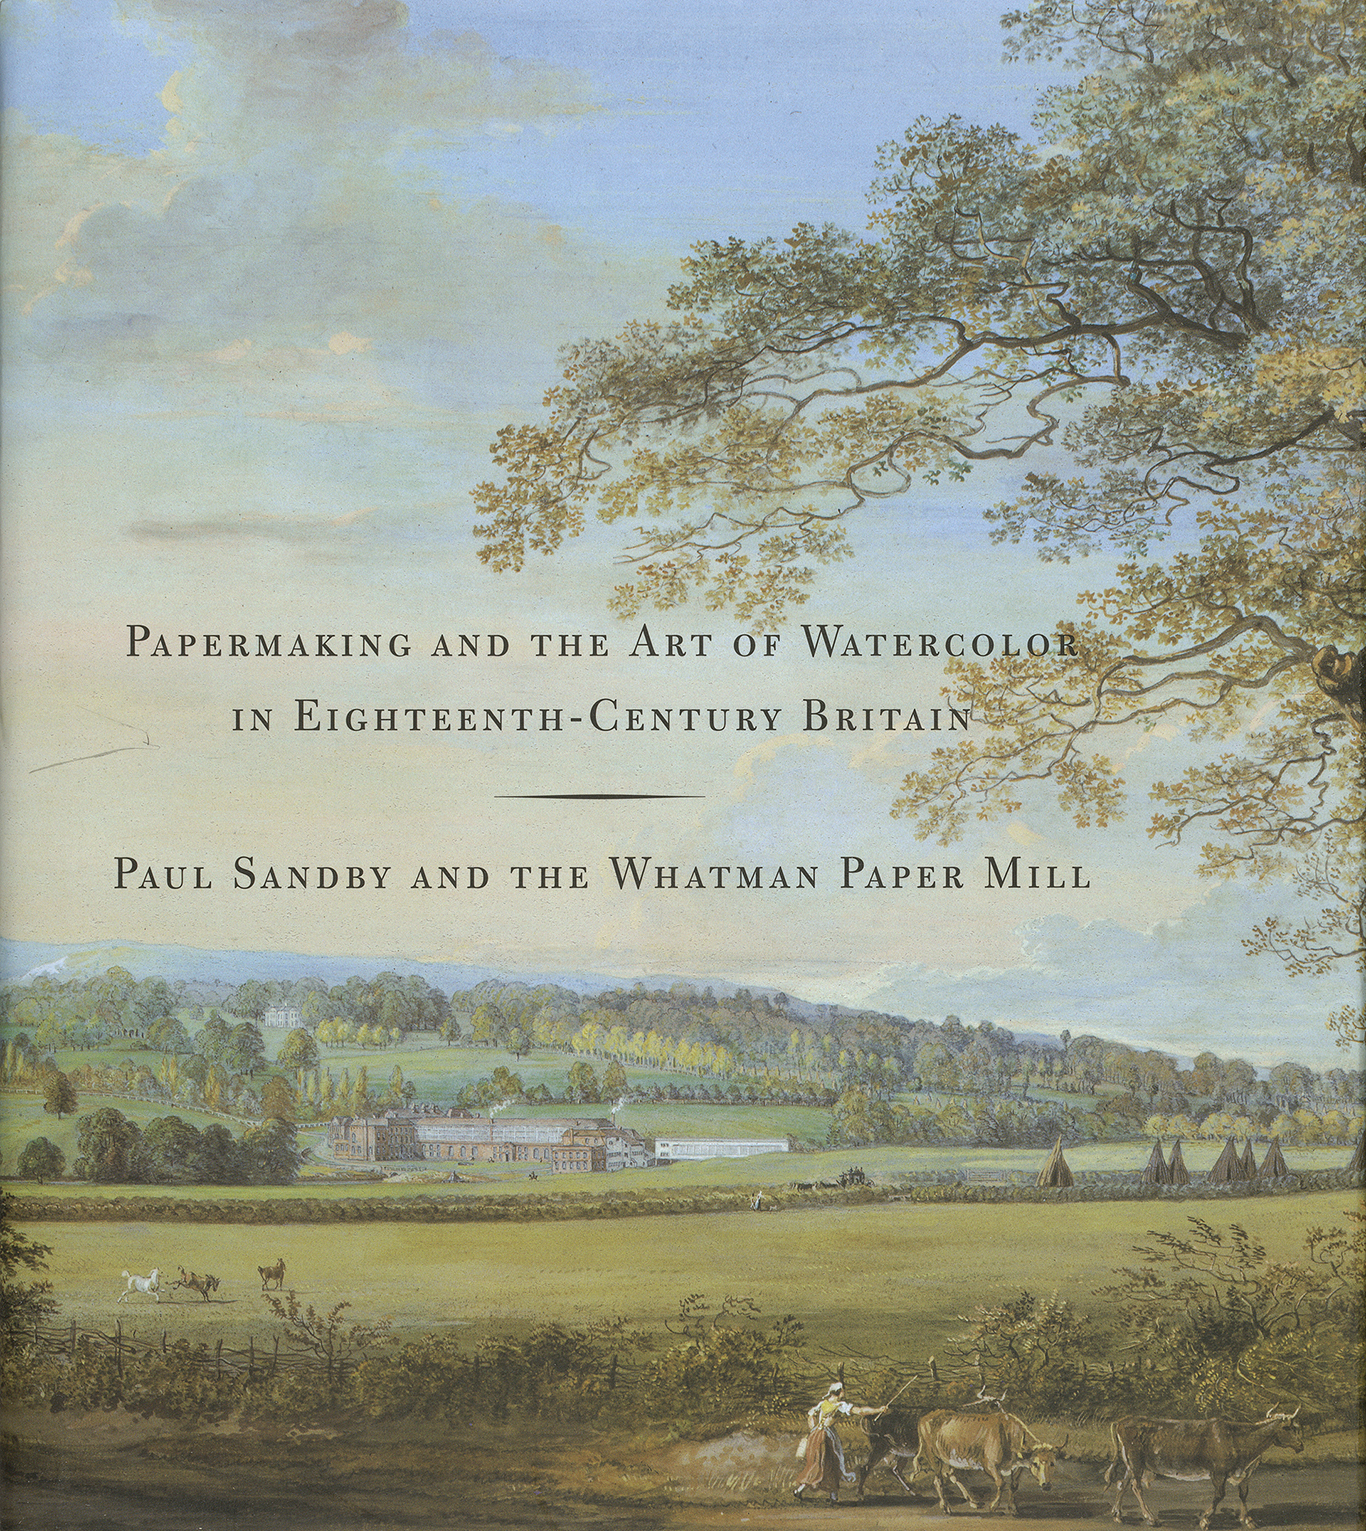 Cover, Papermaking and the Art of Watercolor in Eighteenth-Century Britain: Paul Sandby and the Whatman Paper Mill